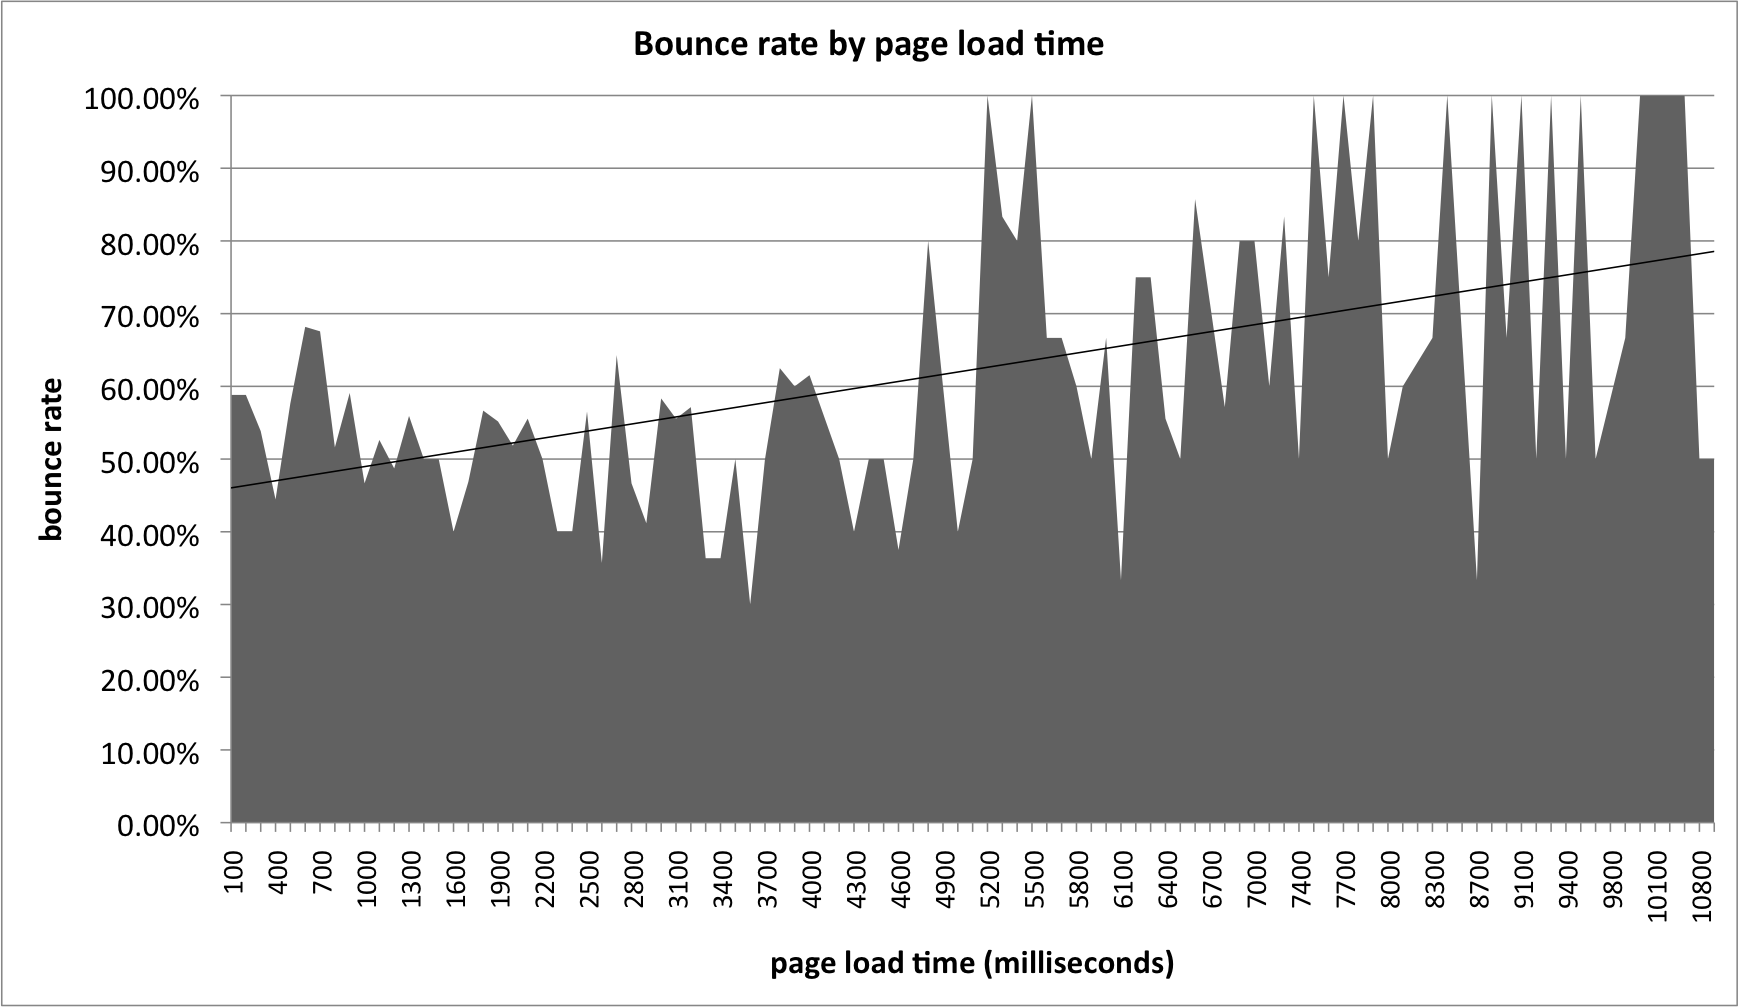 Bounce rate by page load time